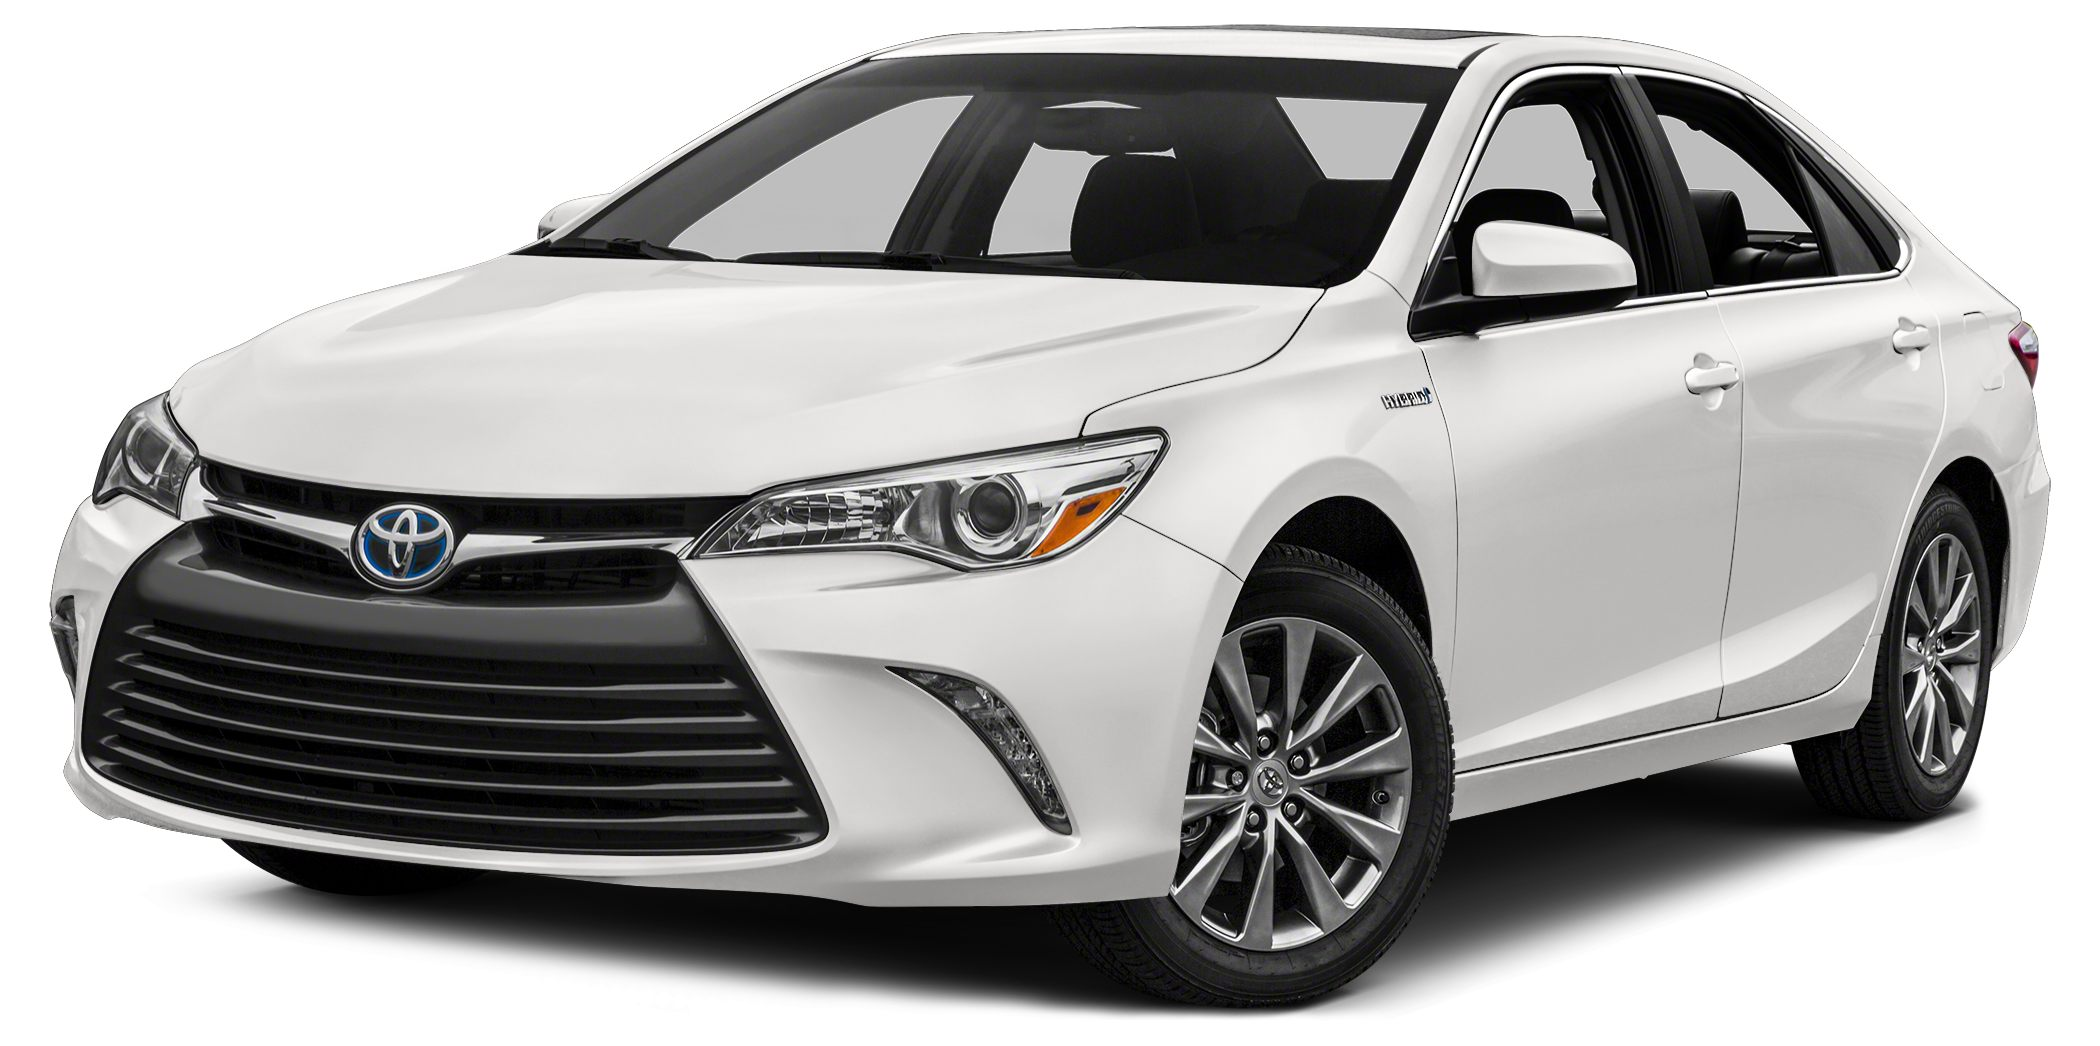 2017 Toyota Camry Hybrid SE Westboro Toyota is proud to present HASSLE FREE BUYING EXPERIENCE with